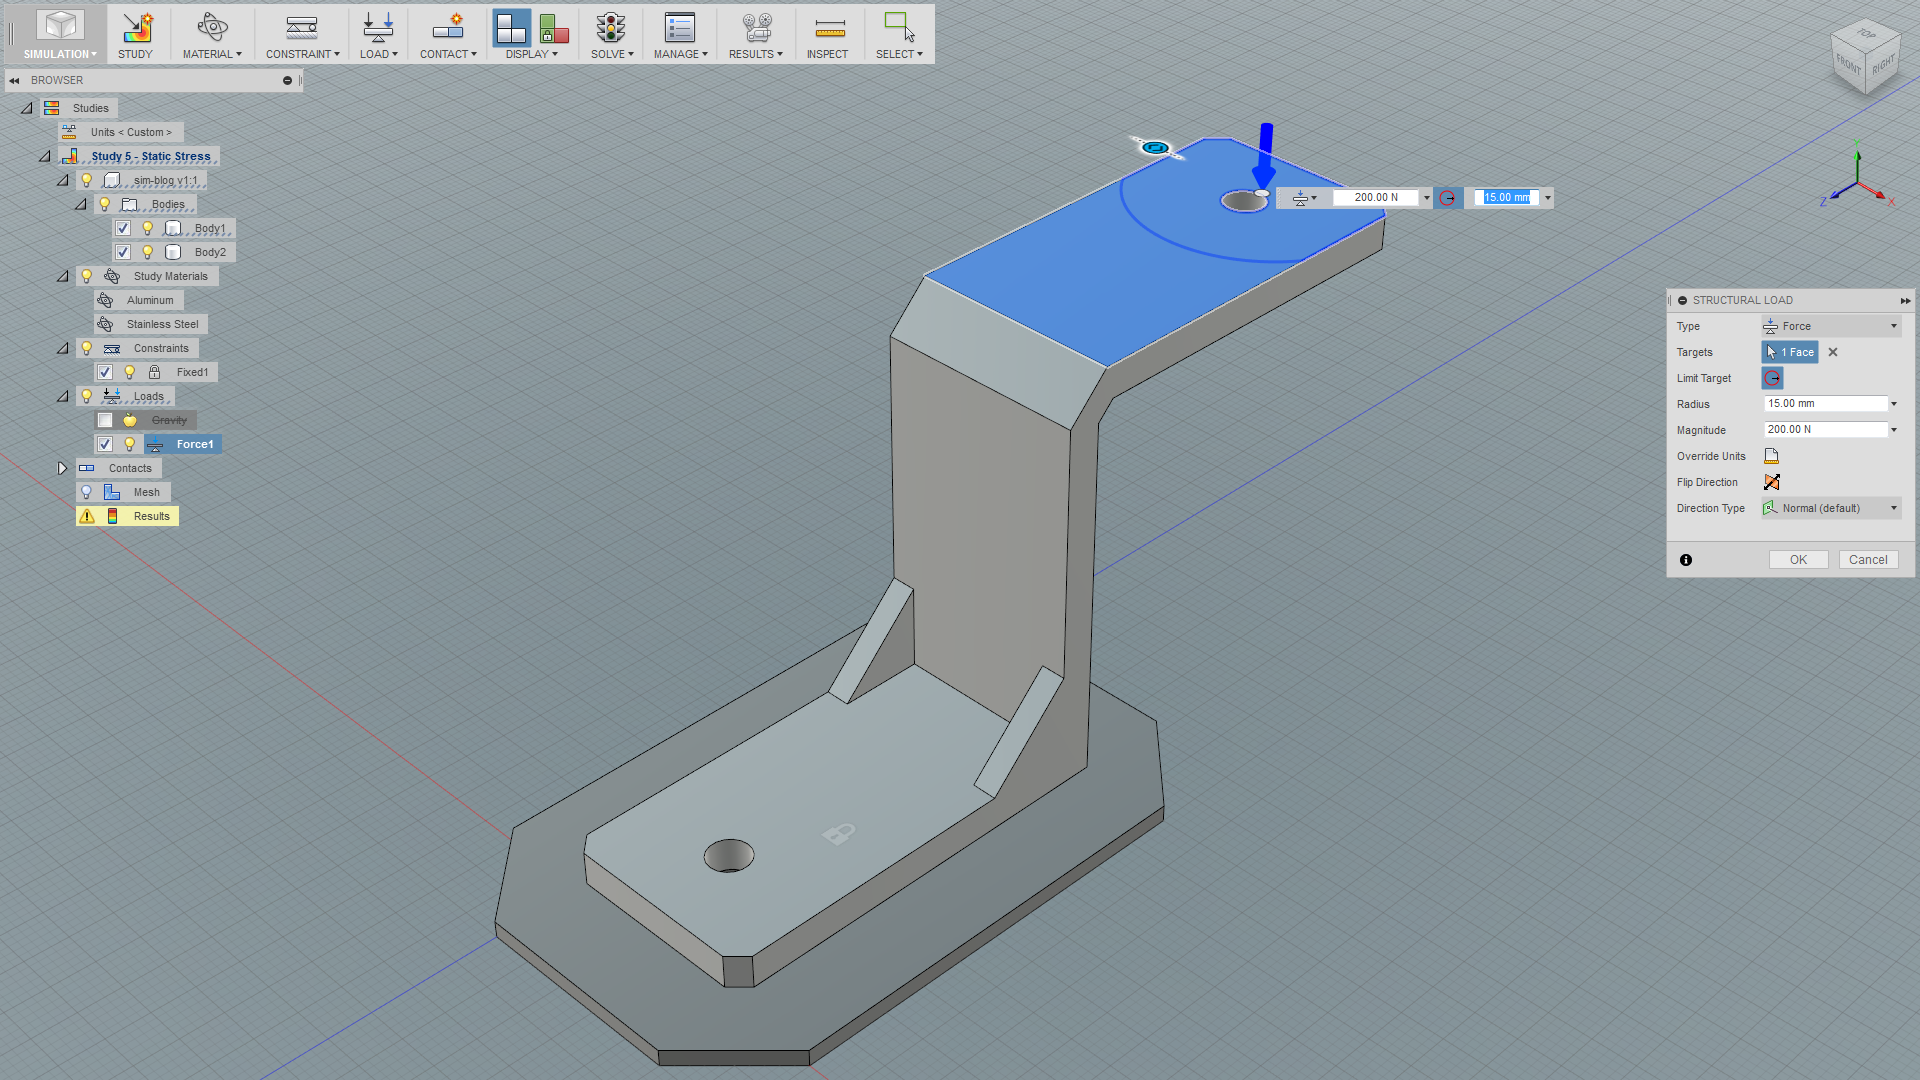 Basic Static Stress Simulation in Fusion 360